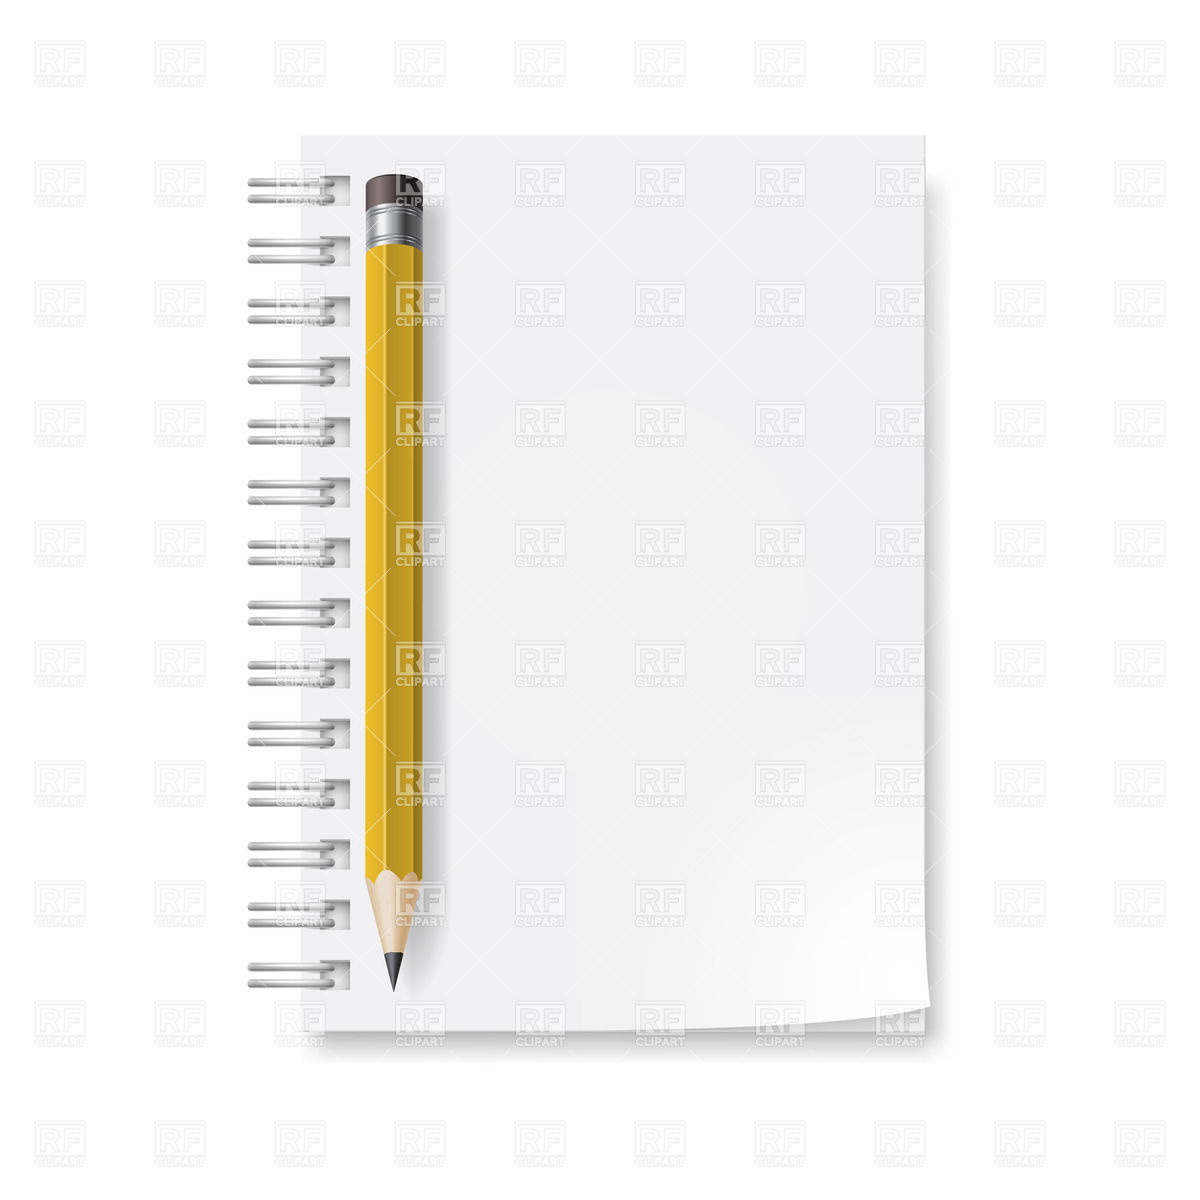 Notebook and yellow pencil with eraser Vector Image #20573.